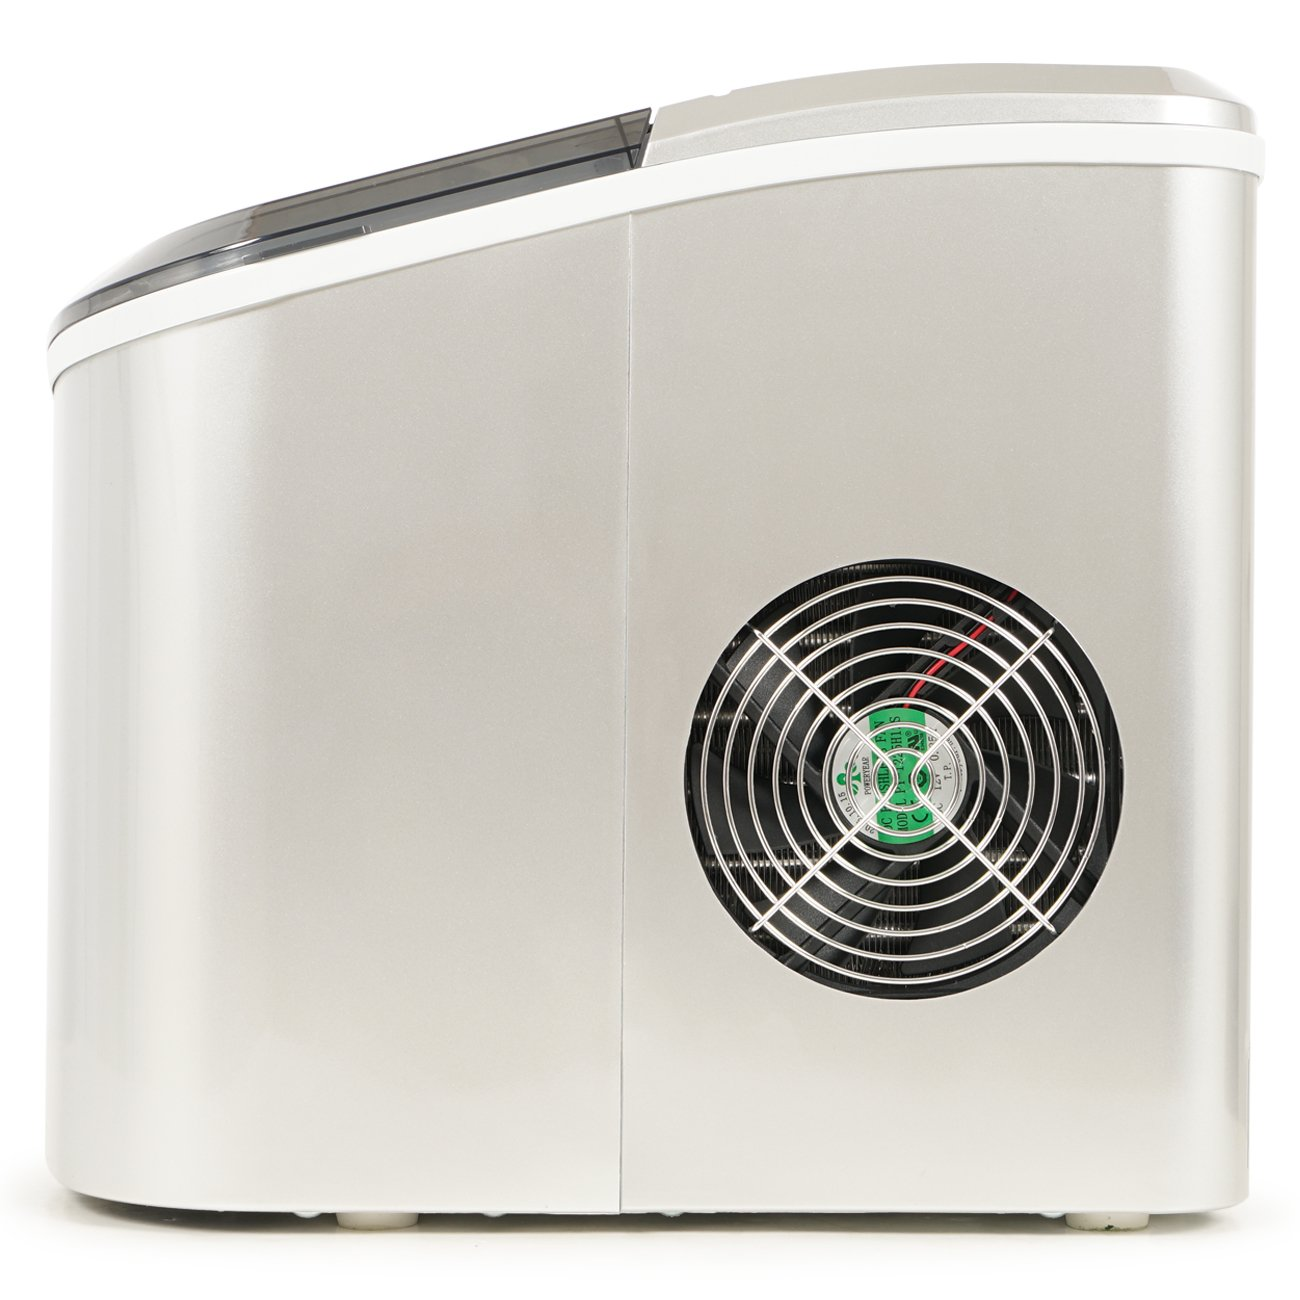 Red Yield Up To 26 Pounds of Ice Daily Della Portable Ice Maker w ...